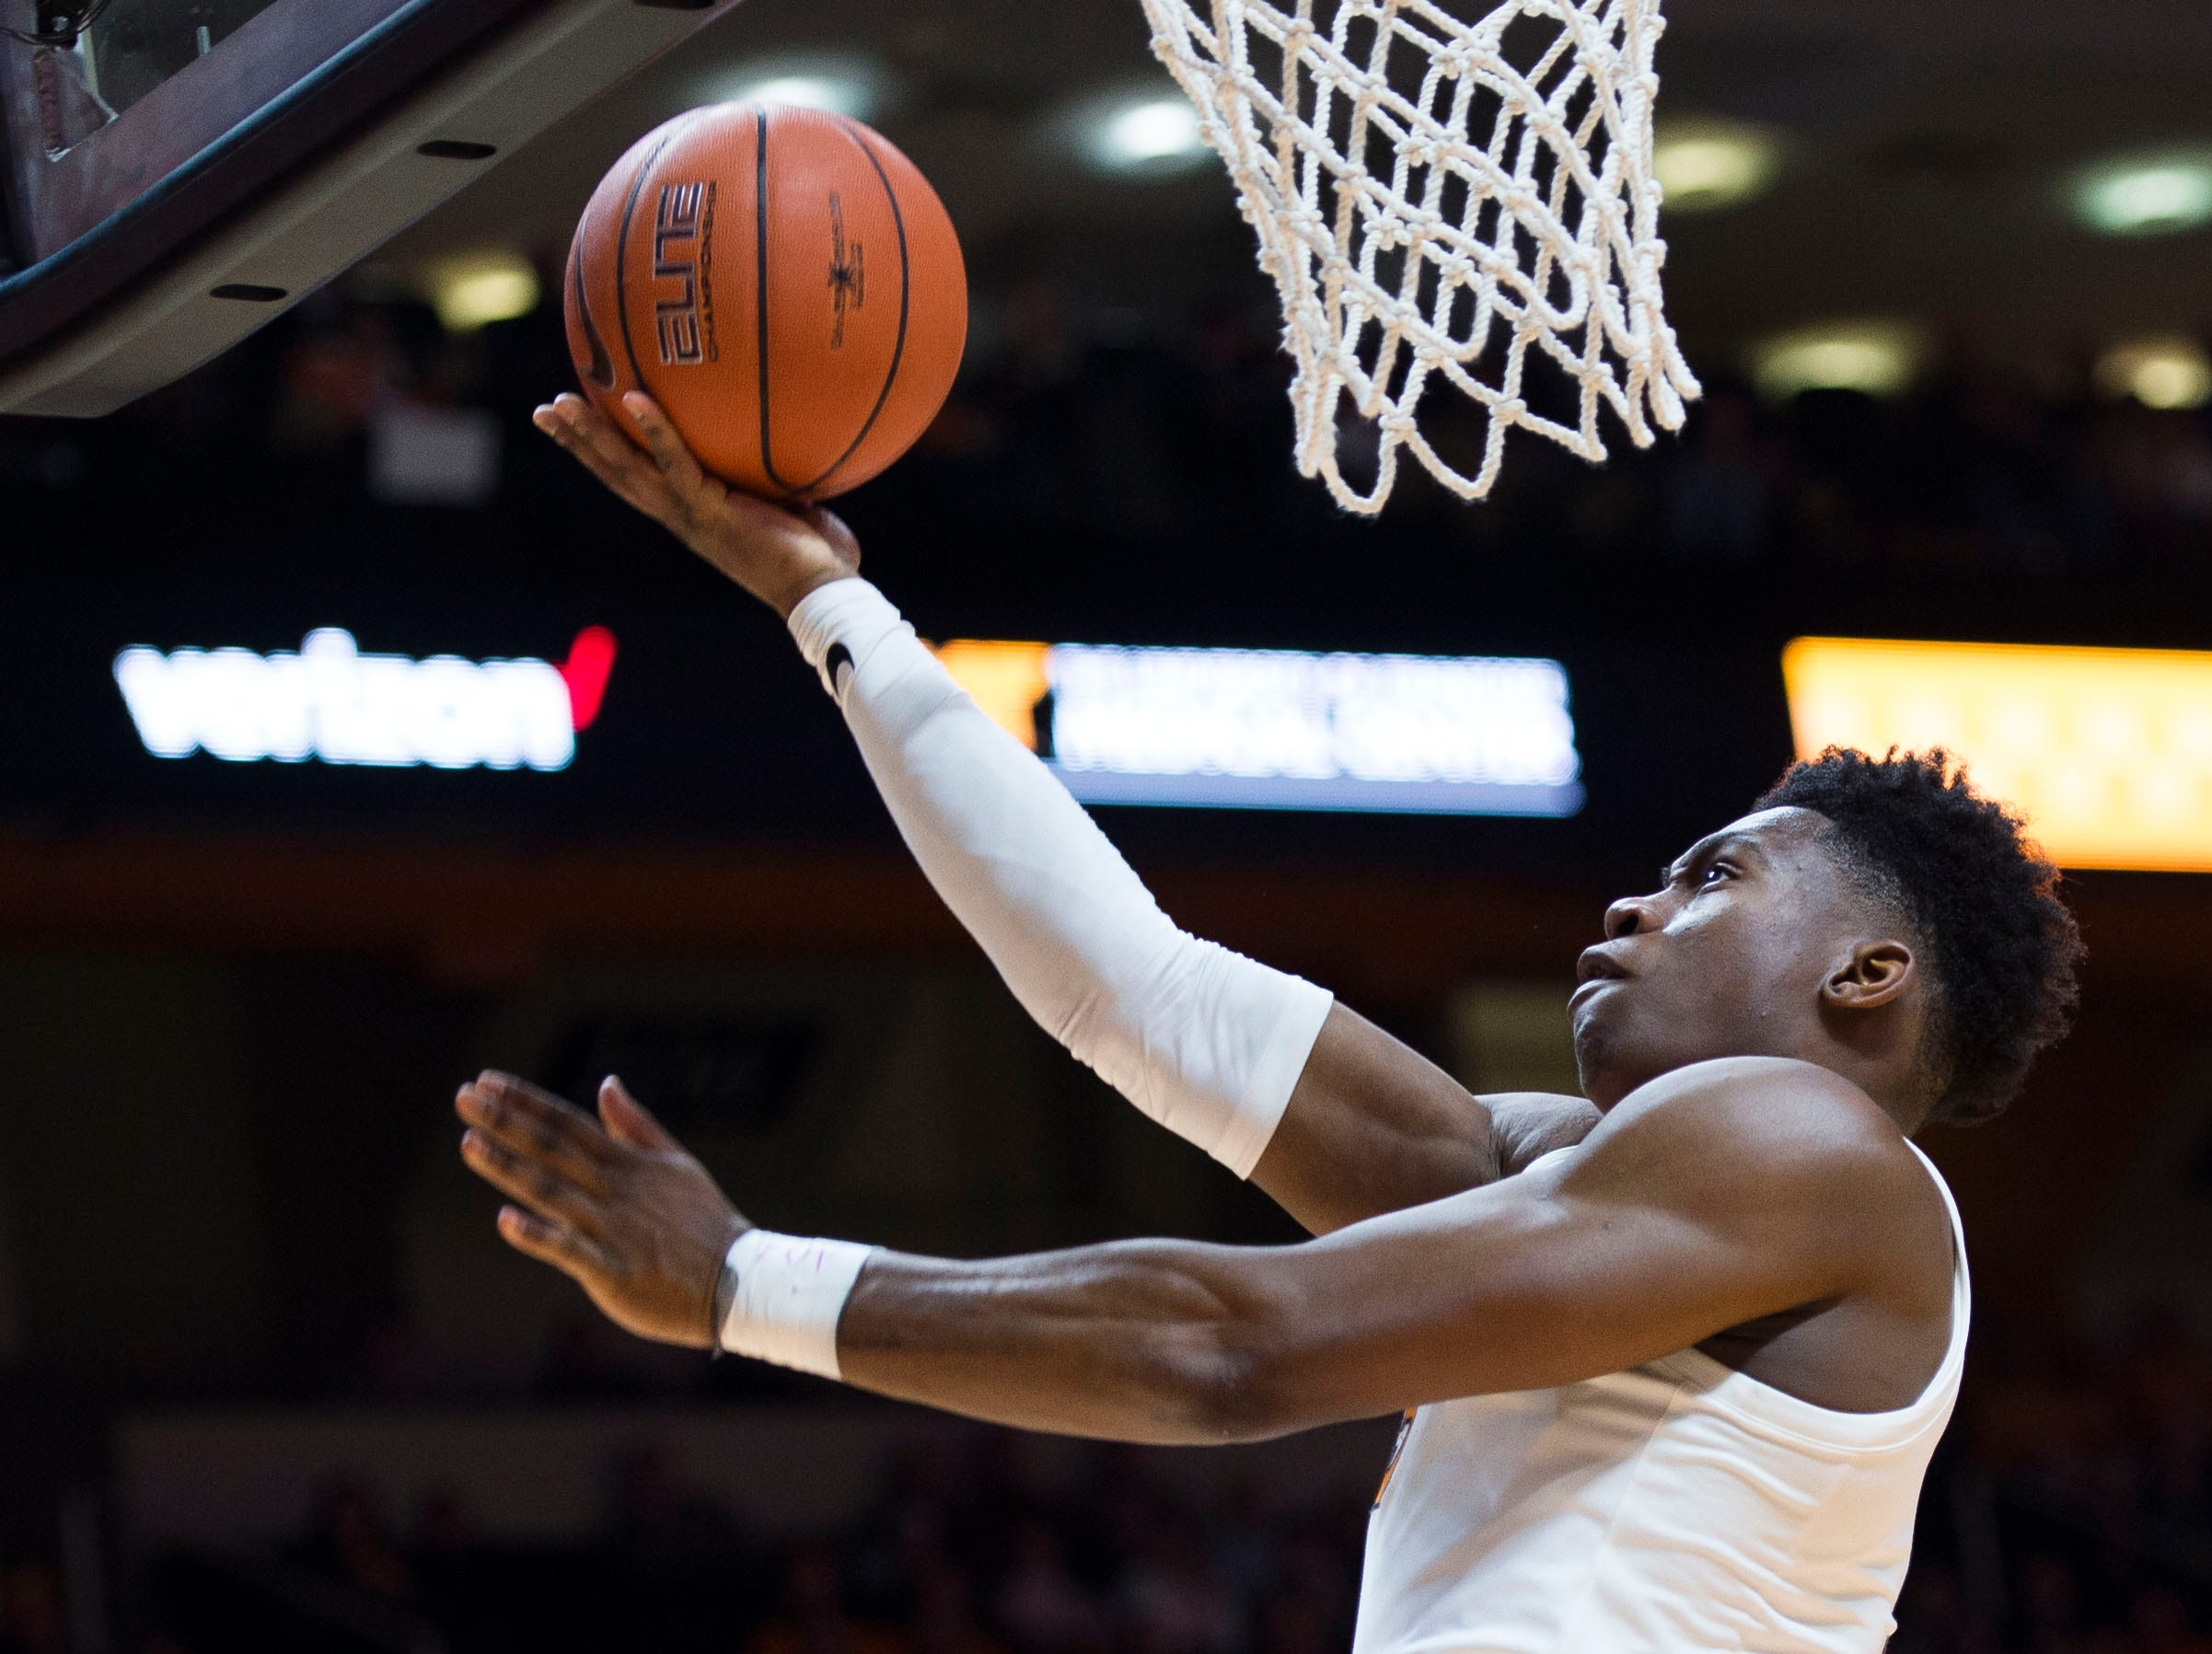 Tennessee's Admiral Schofield (5) takes a shot during the second half of a NCAA men's basketball game between Tennessee and Eastern Kentucky University at Thompson-Boling Arena Wednesday, Nov. 28, 2018. Tennessee defeated EKU 95-67.